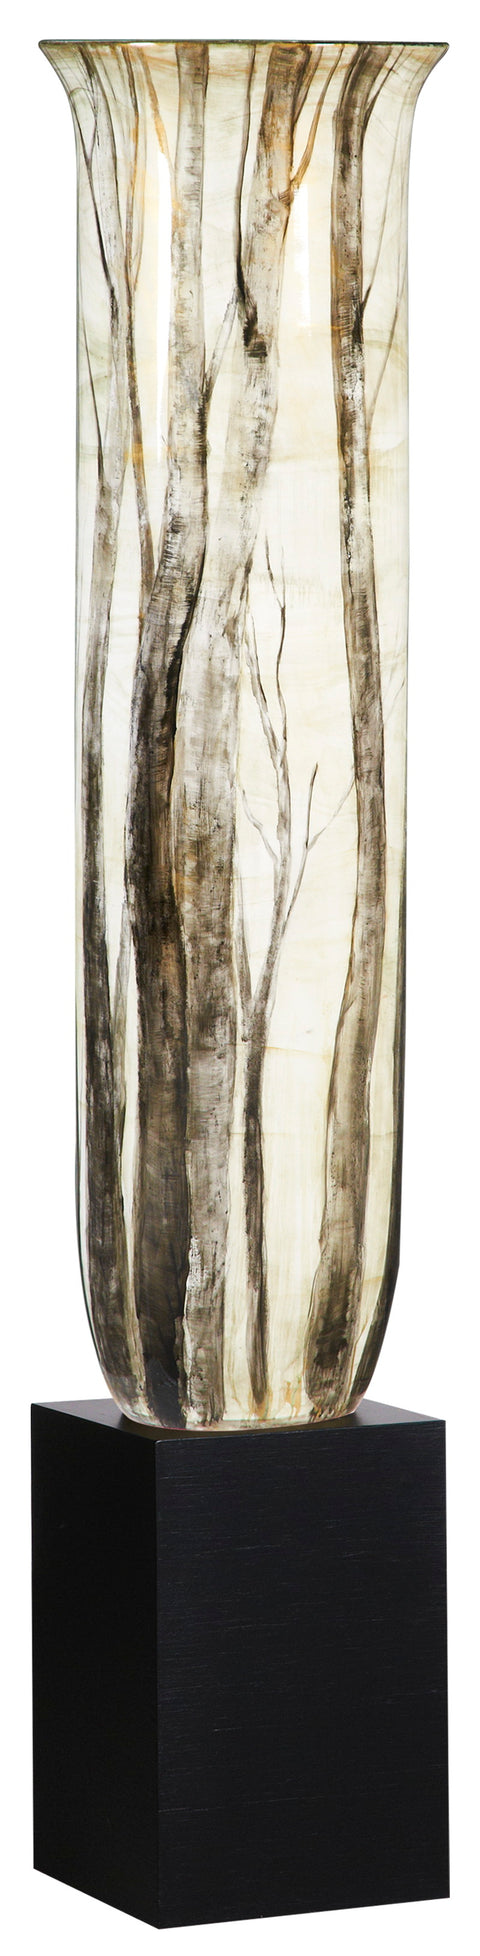 Grand Birch Branches Vase on Stand